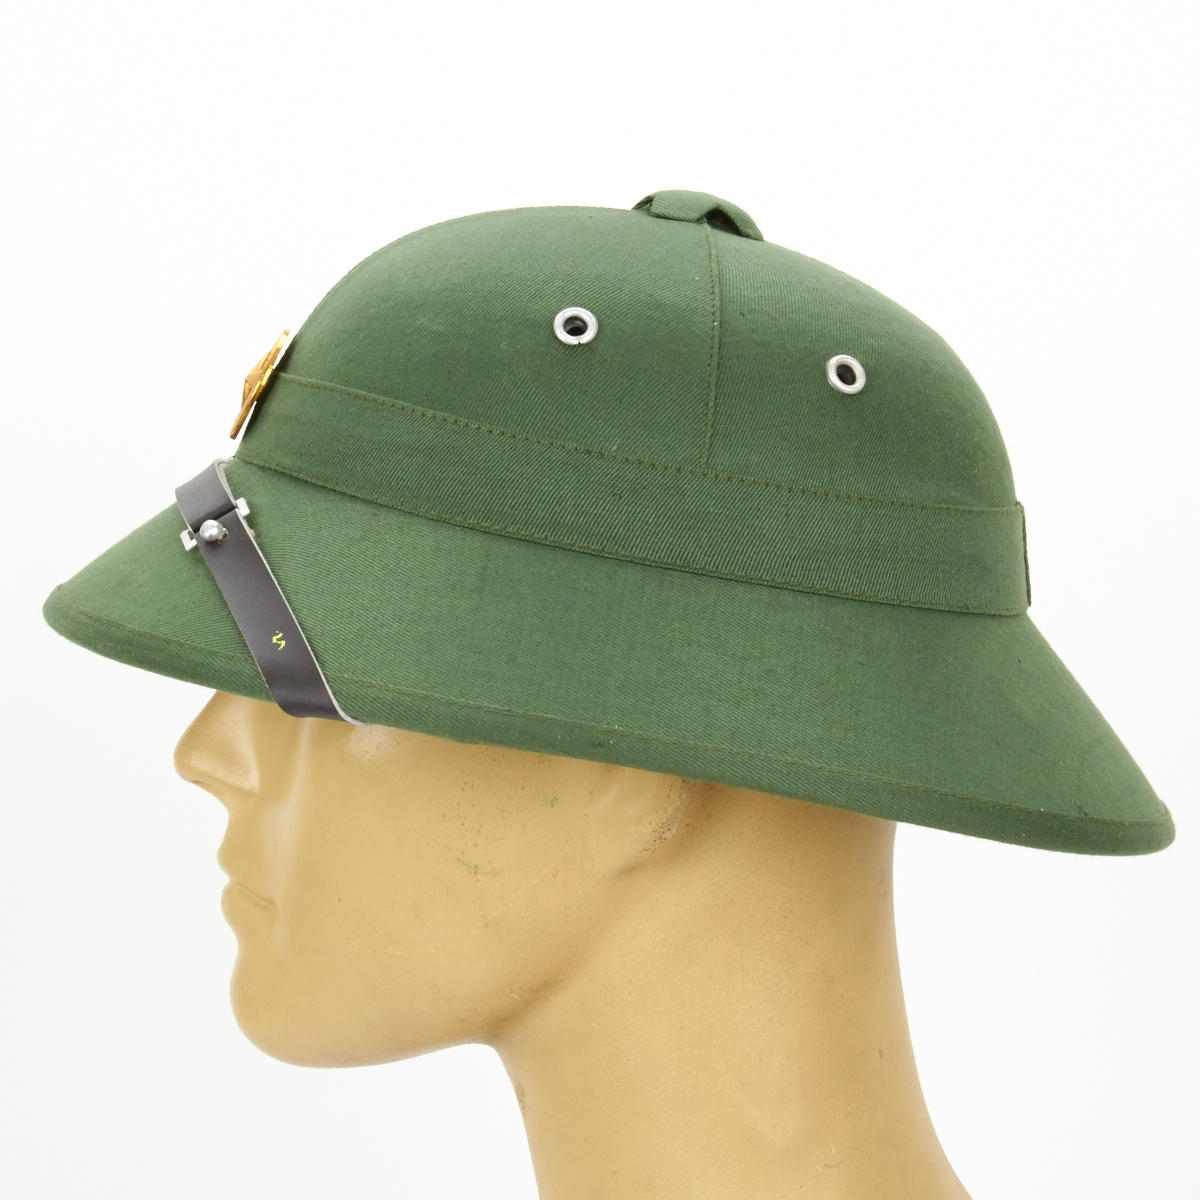 8213663a9b93c Details about North Vietnamese Army Vietcong Pith Helmet with Red Star Badge